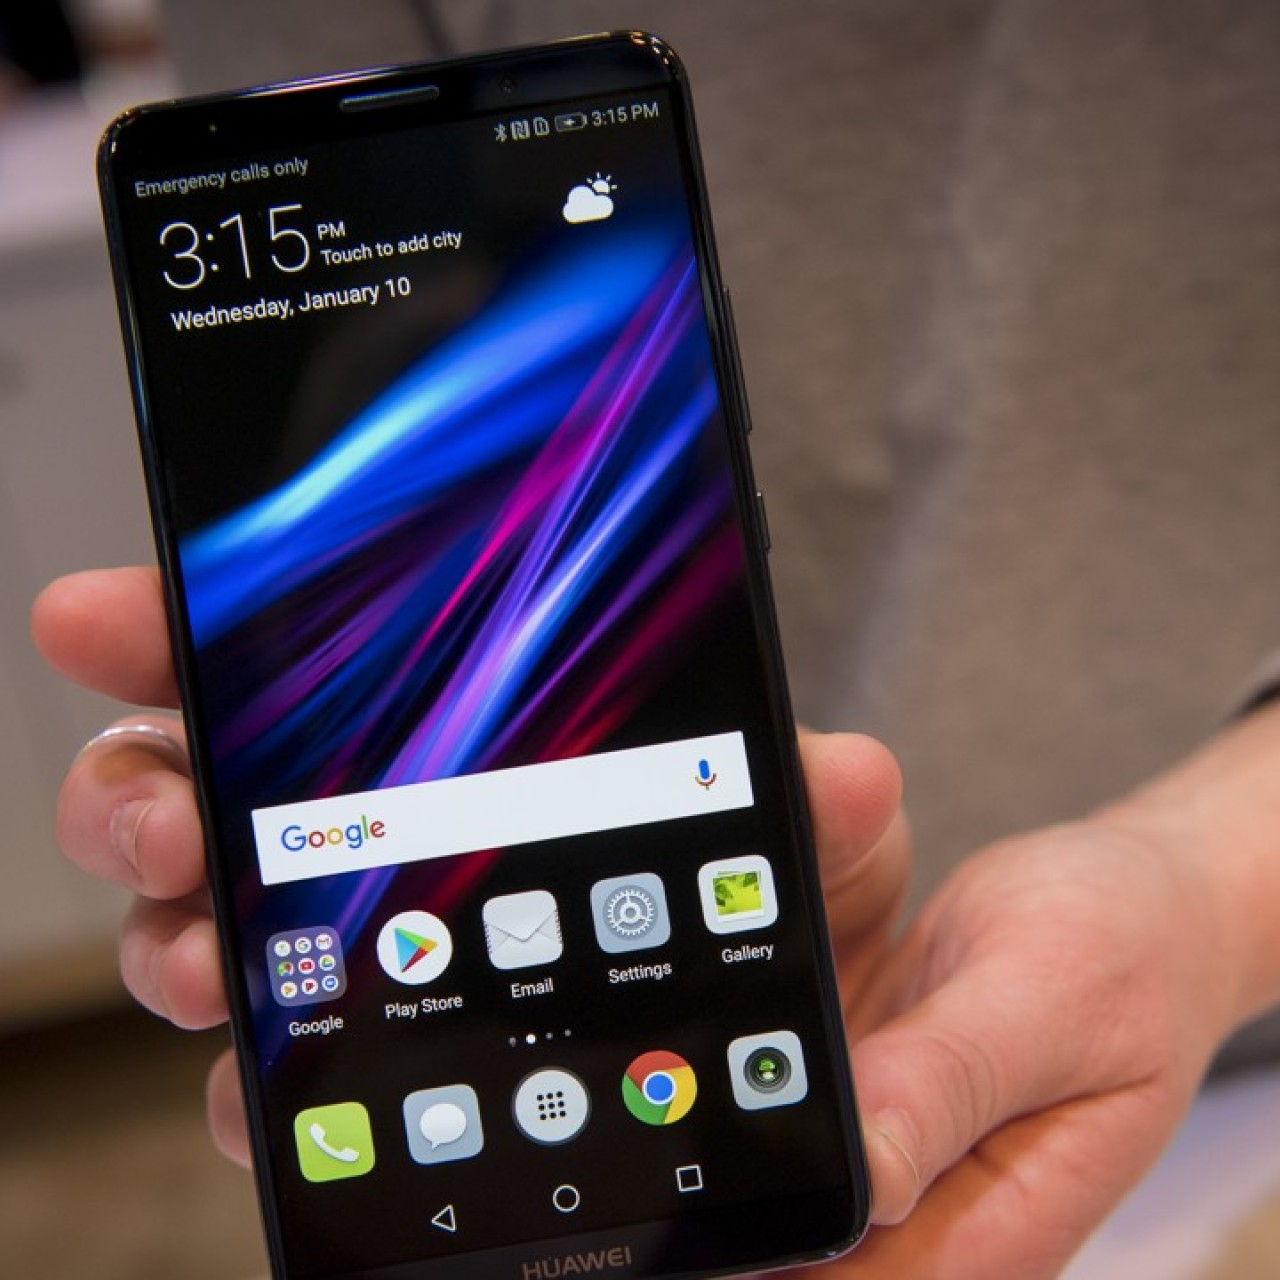 Spurned by US carriers, Huawei sets world's lowest price for its